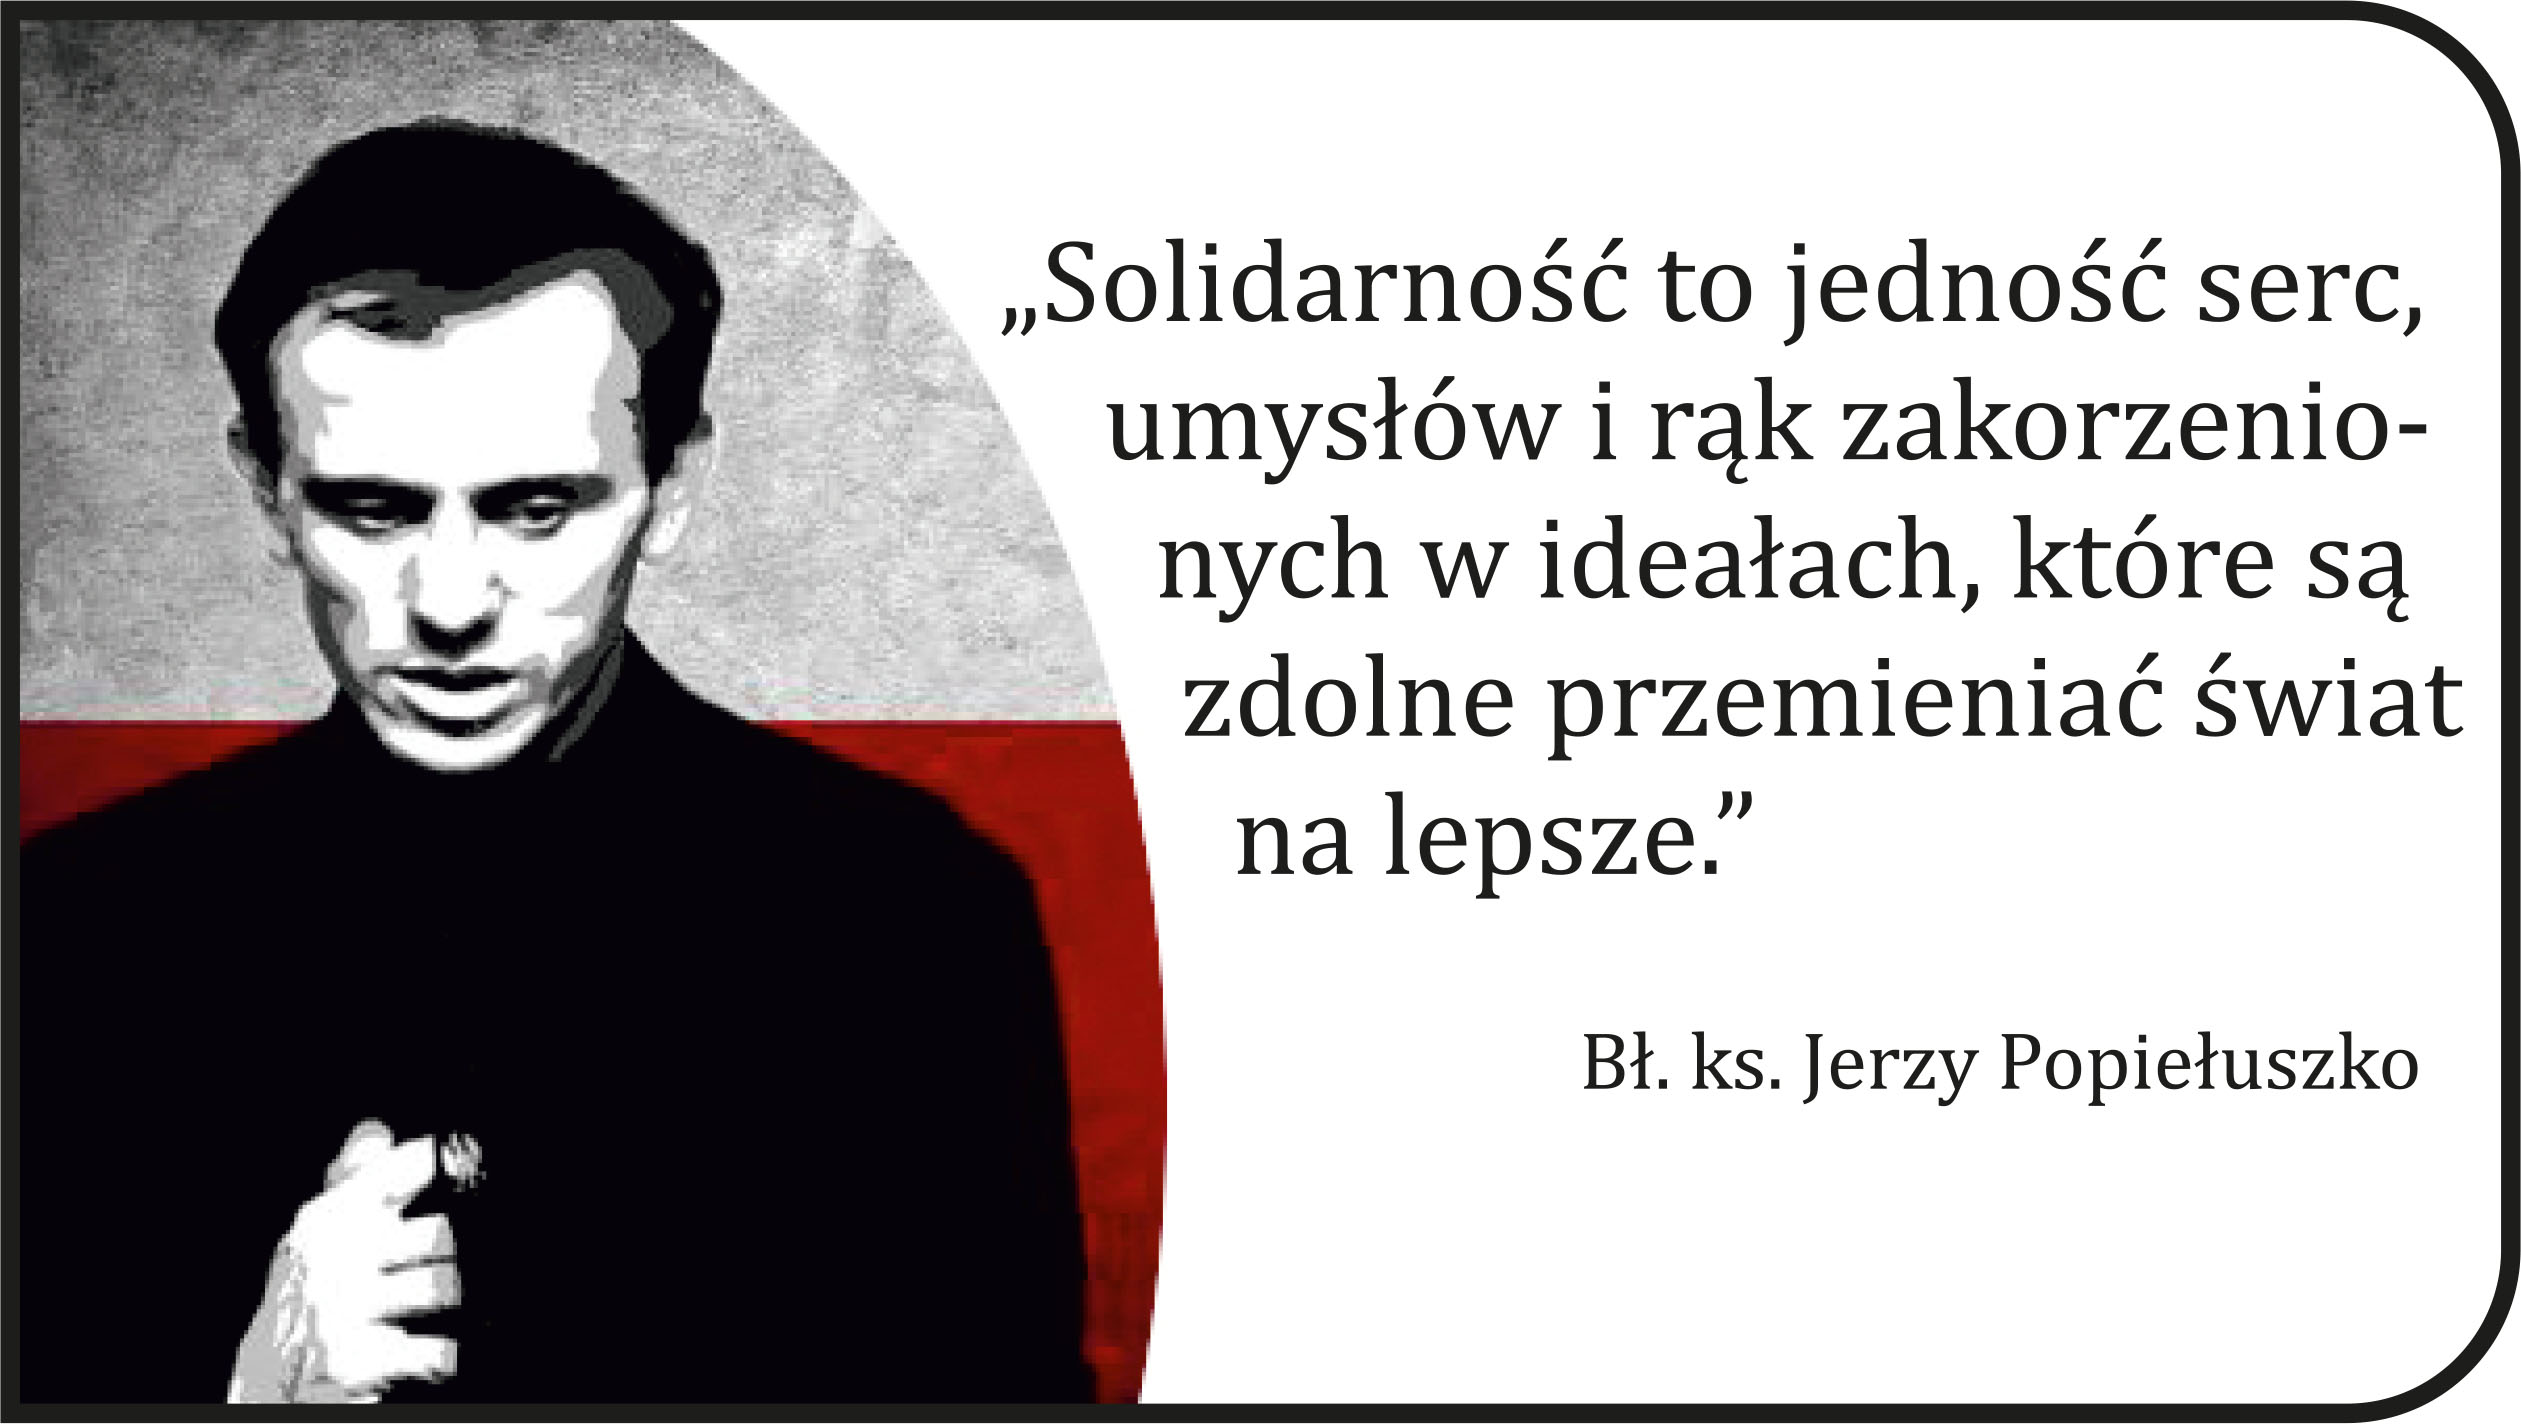 Solidarnosc_to_jednosc